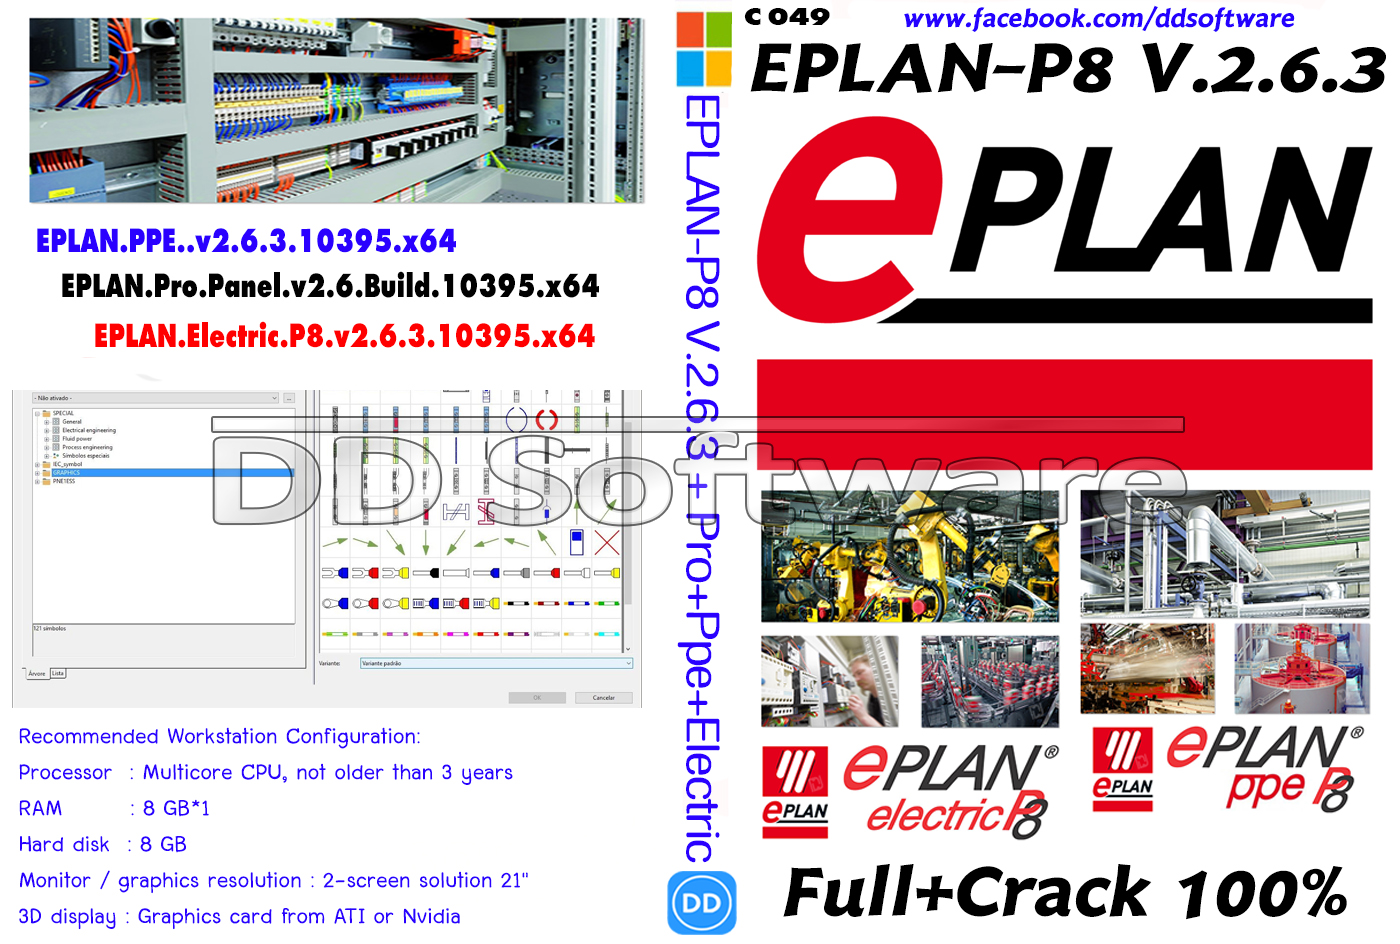 C049 EPLAN-P8 V 2 6 3 + Pro+Ppe+Electric | dd-software